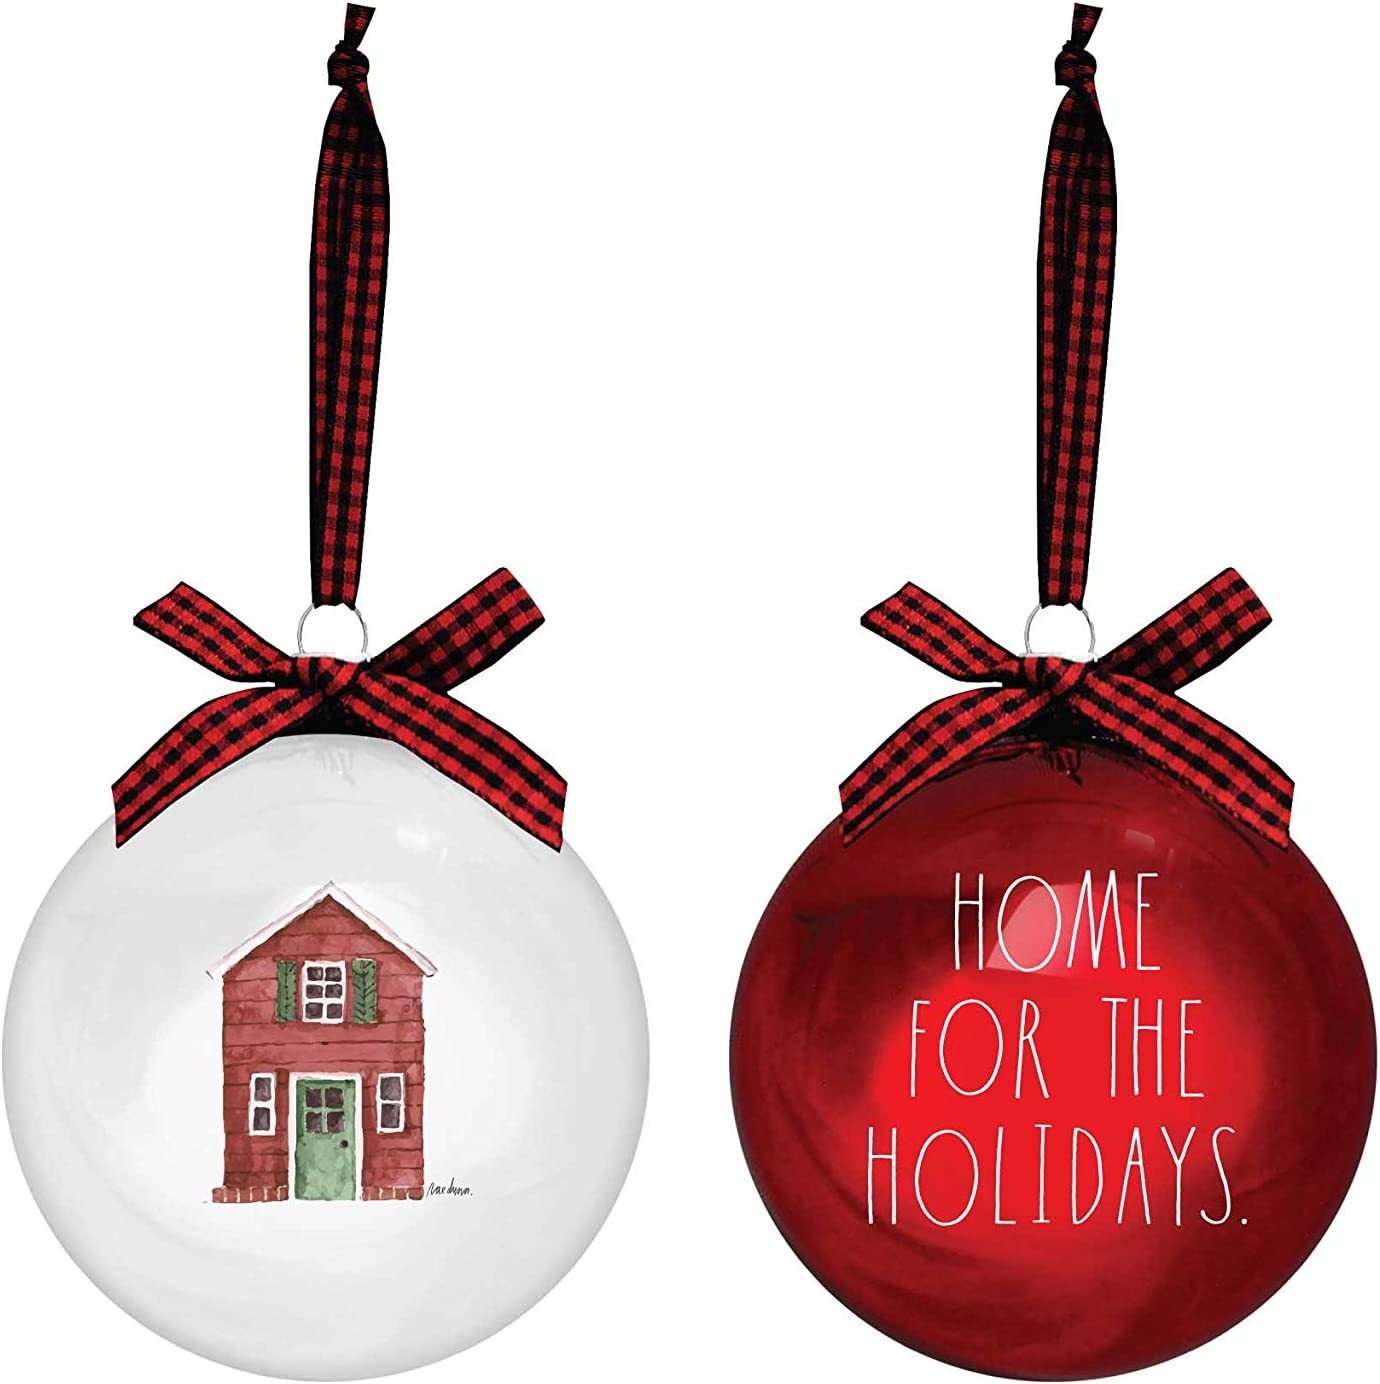 Rae Dunn Christmas Ornaments - Set of 2 Glass Balls - 100mm / 3.94 Inch Large Hanging Holiday Decorations for Xmas Tree Home for The Holidays